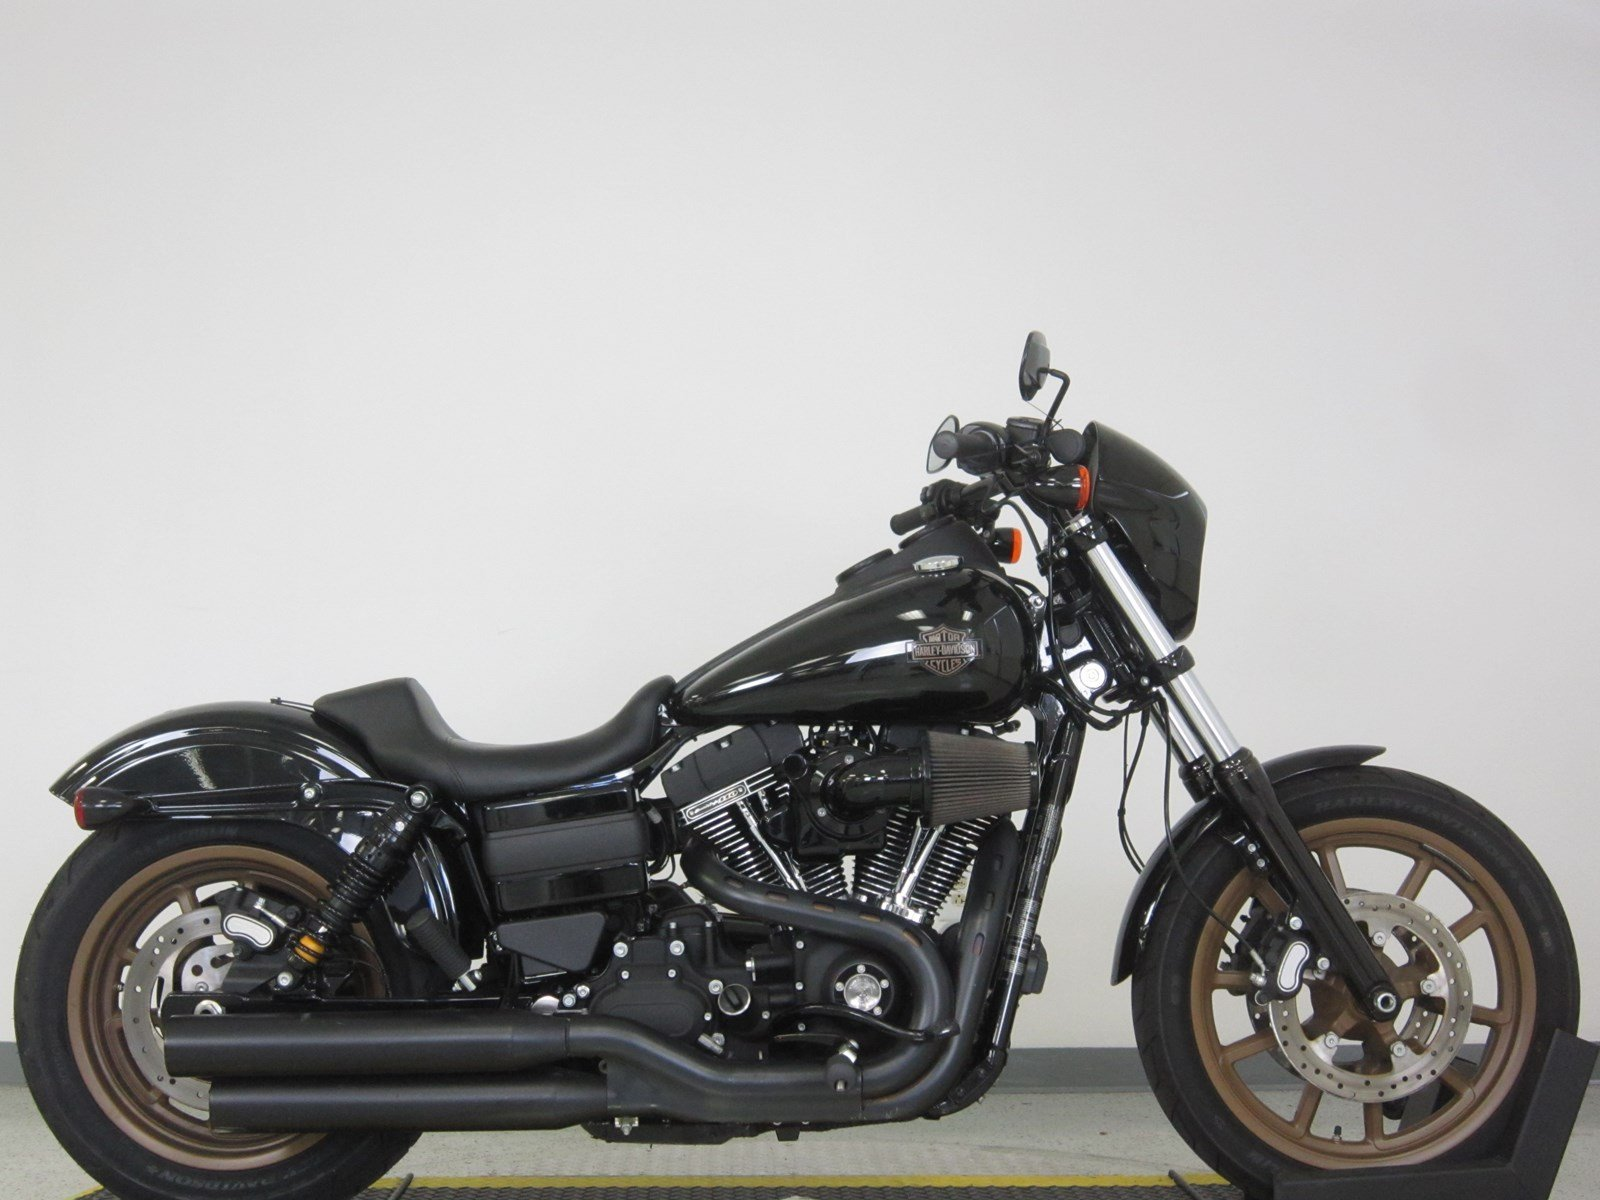 pre owned 2017 harley davidson dyna low rider s fxdls dyna in n billerica u302175 high. Black Bedroom Furniture Sets. Home Design Ideas